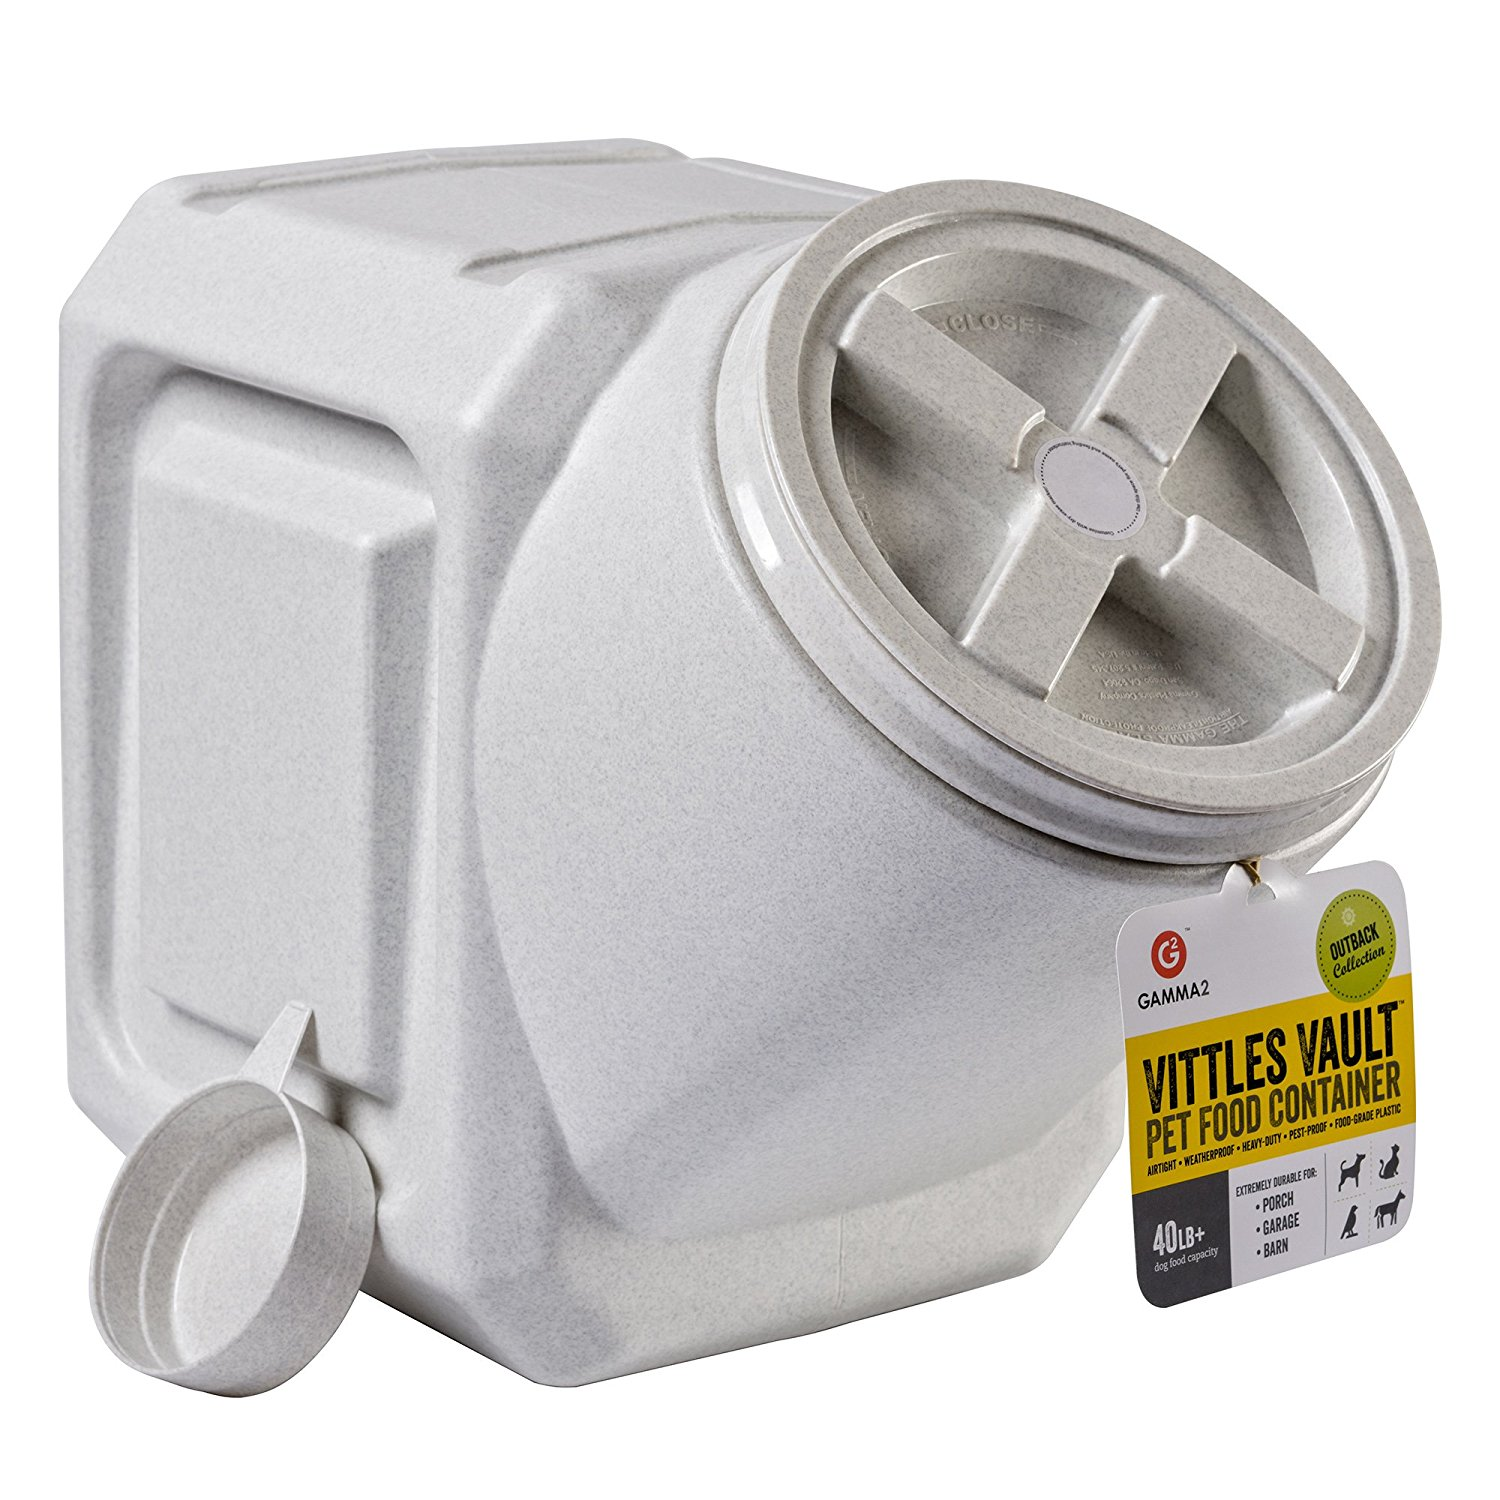 Buy Vittles Vault Airtight Stackable Pet Food Container